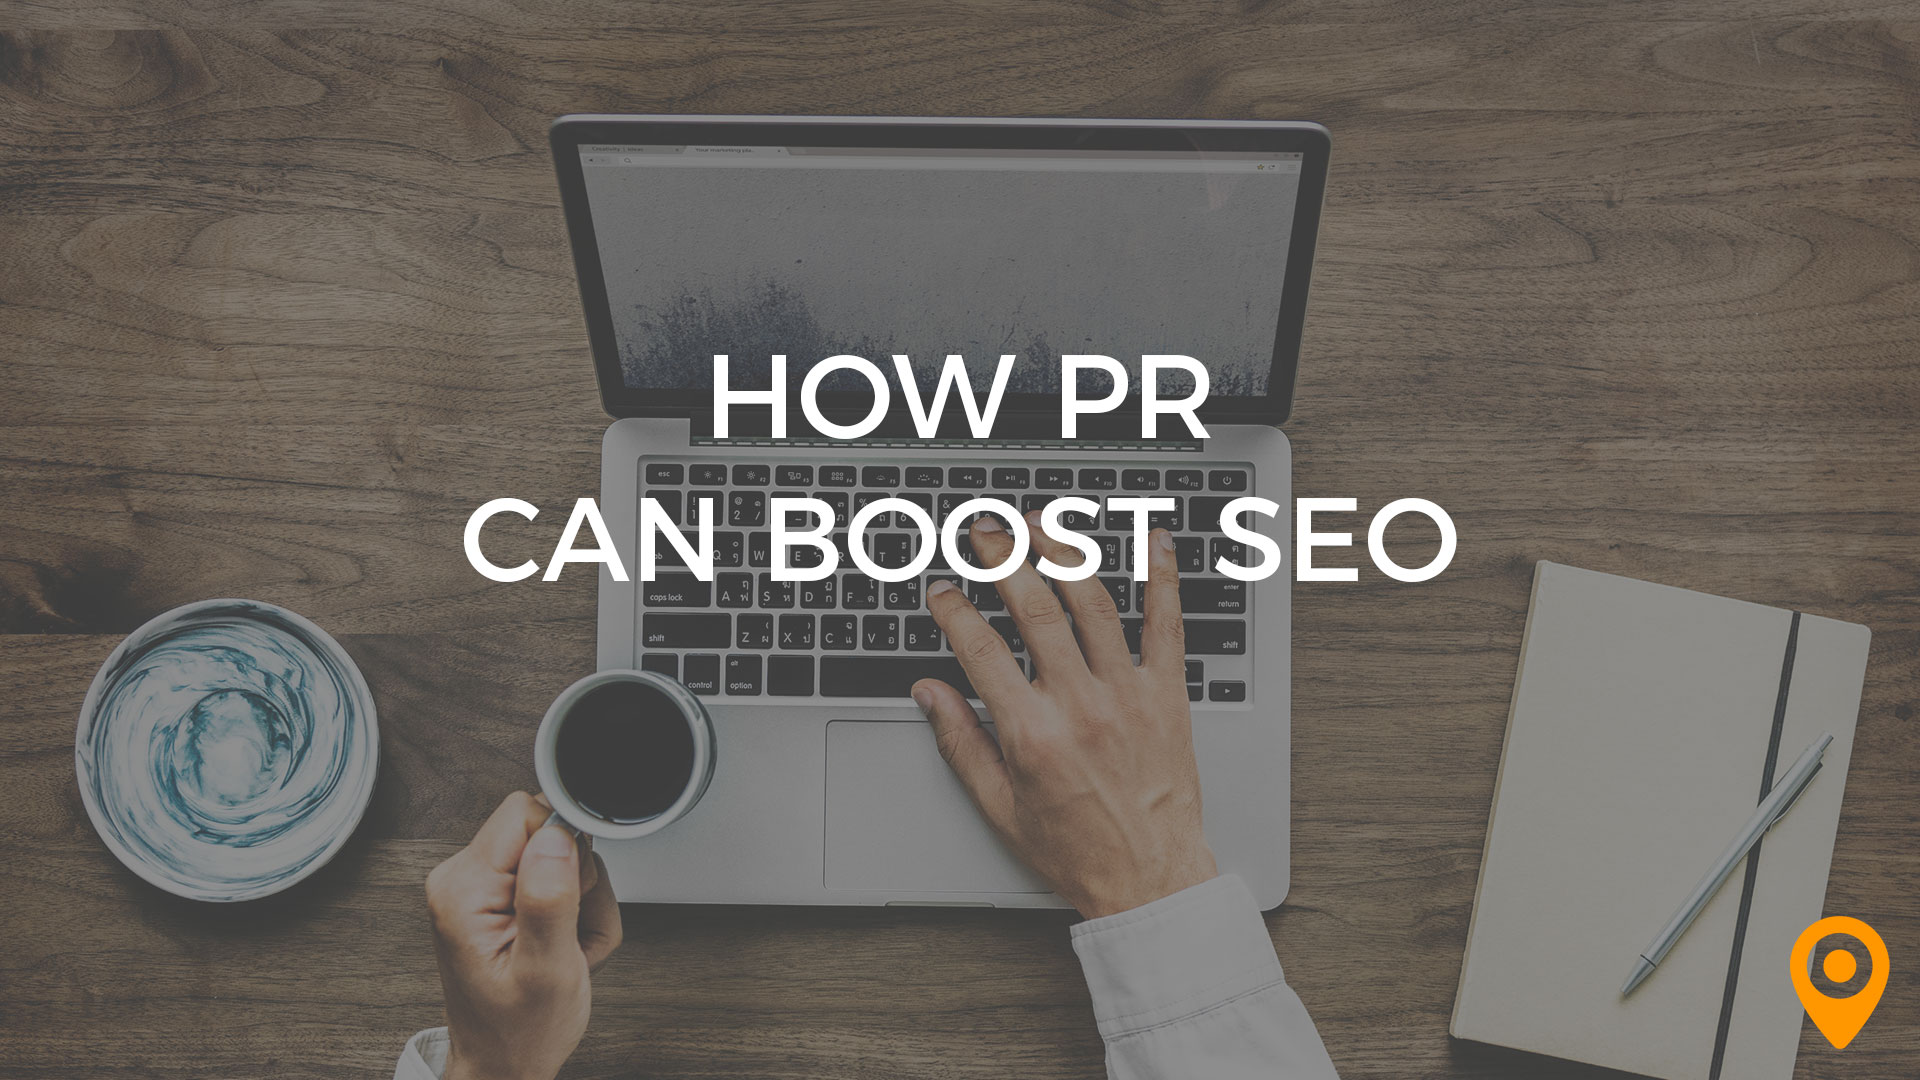 How PR Can Boost SEO